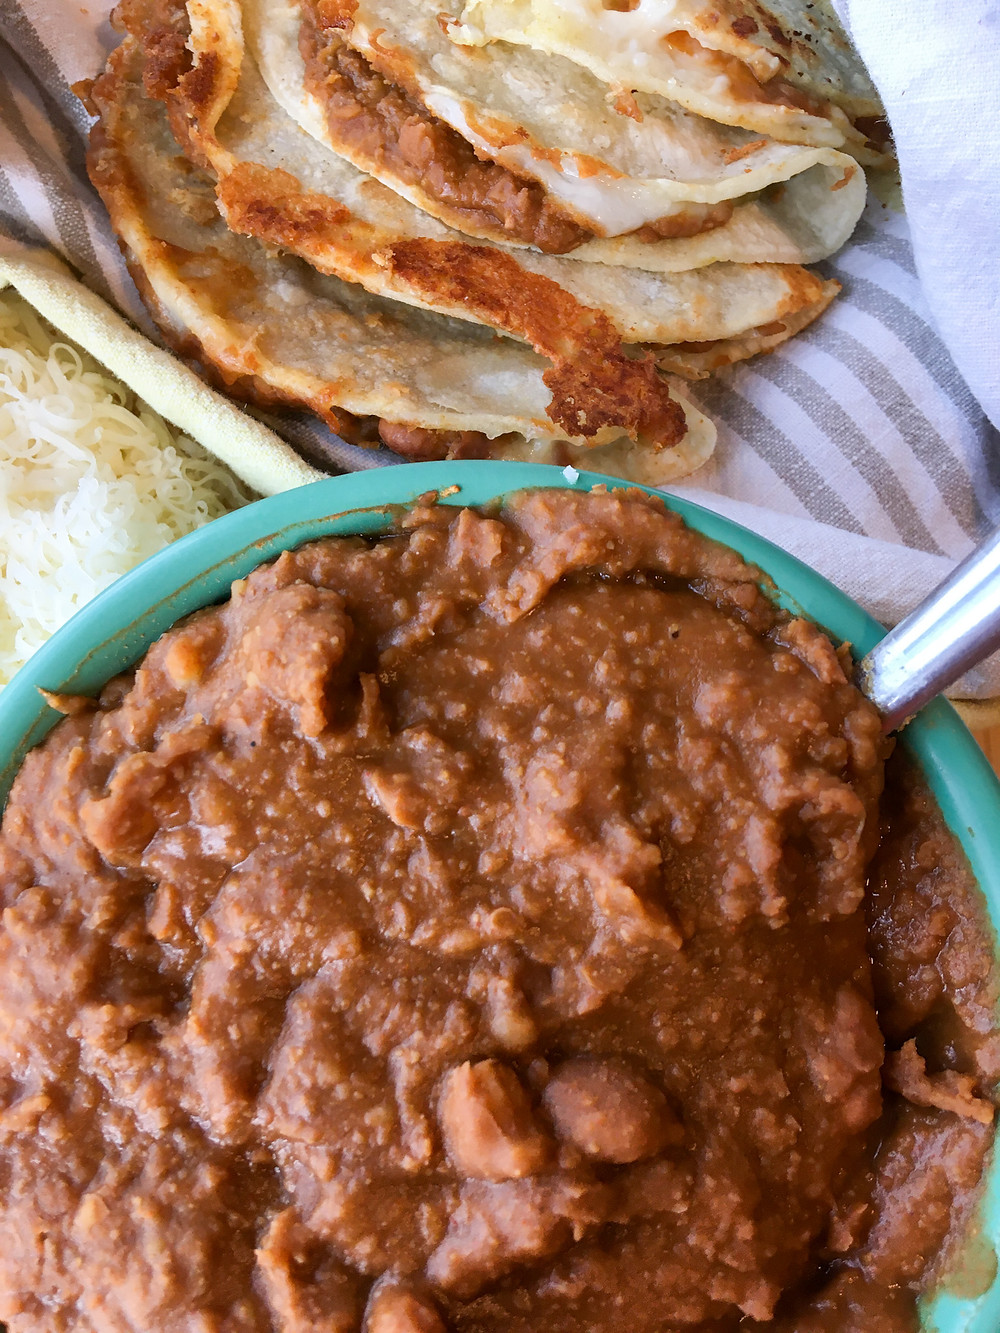 Refried beans, Beans, Pinto Beans, Quesadilla, Cheese, Instant Pot Recipes, Dairy Free Recipes, Gluten Free Recipes, Fat Free Recipes, Preservative Free Recipes, Easy Recipes, Healthy Food